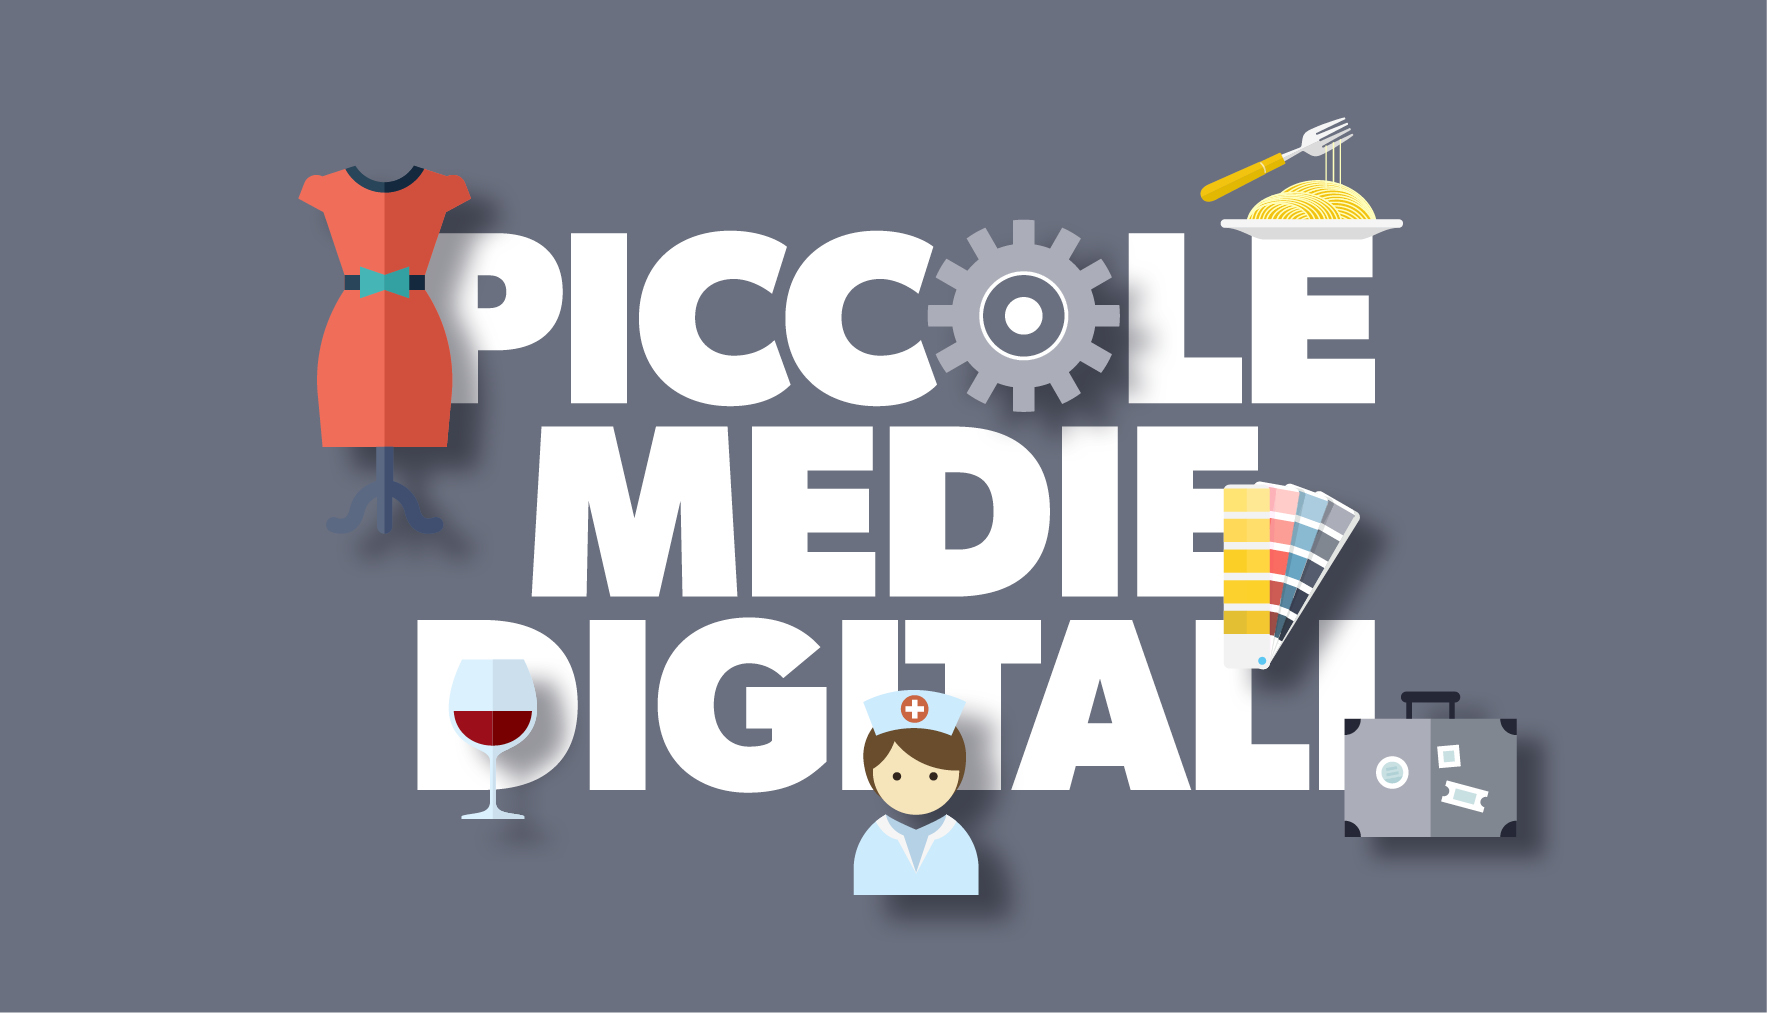 Piccole Medie Digitali - il Roadshow di Registro .it